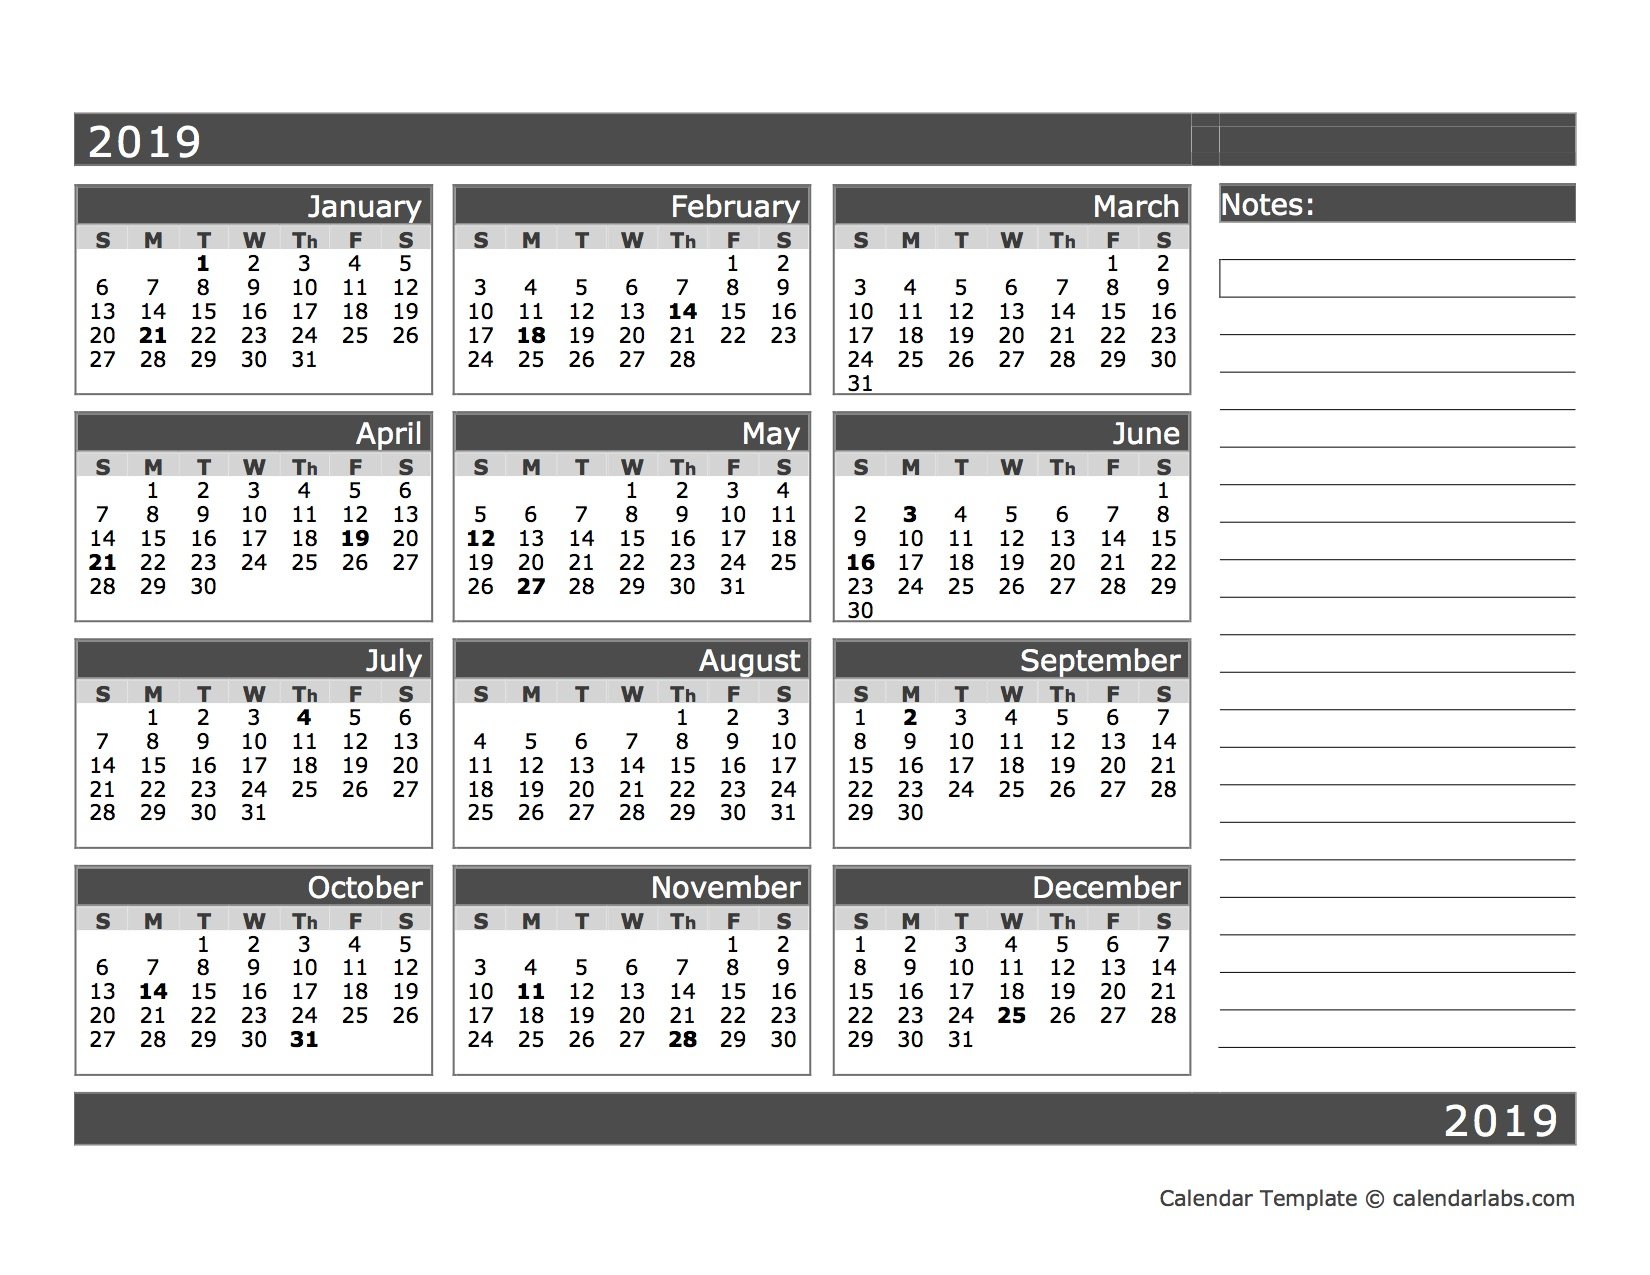 2019 Blank 12 Month Calendar In One Page - Free Printable Printable And Editable 12 Month Calendars